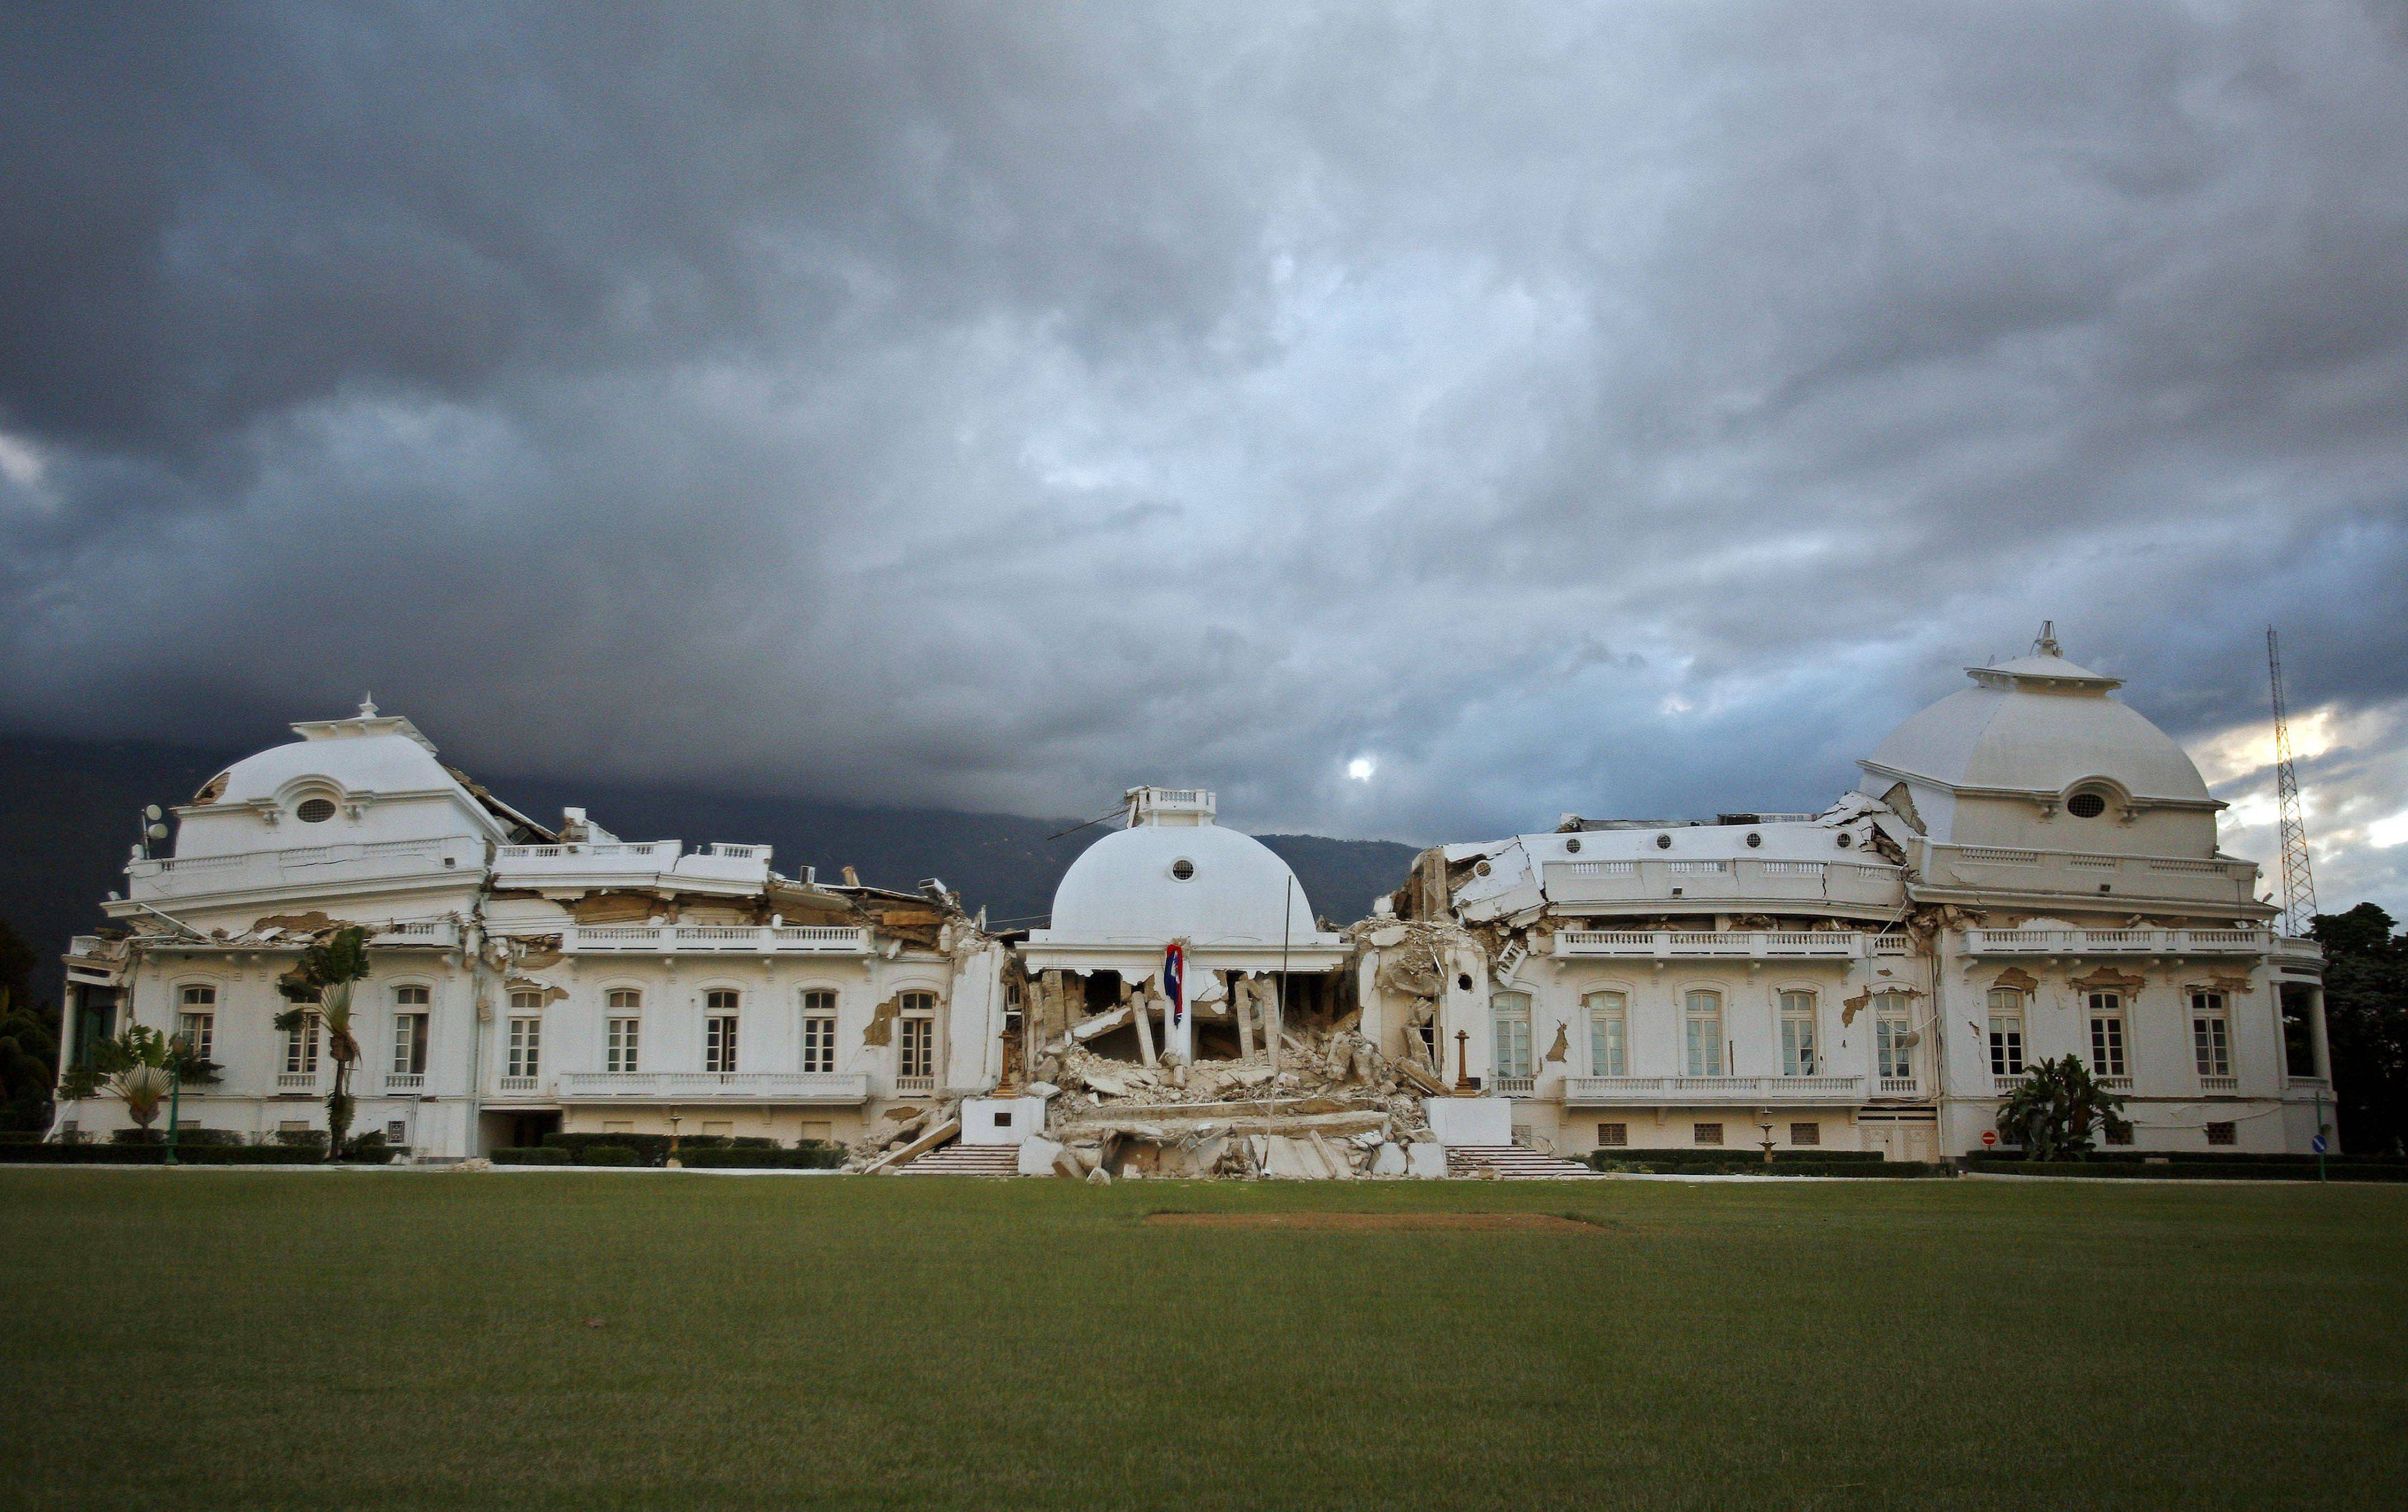 Haiti's National Palace is seen after in Port-au-Prince, Wednesday, Jan. 13, 2010, the day after a powerful earthquake hit the country.